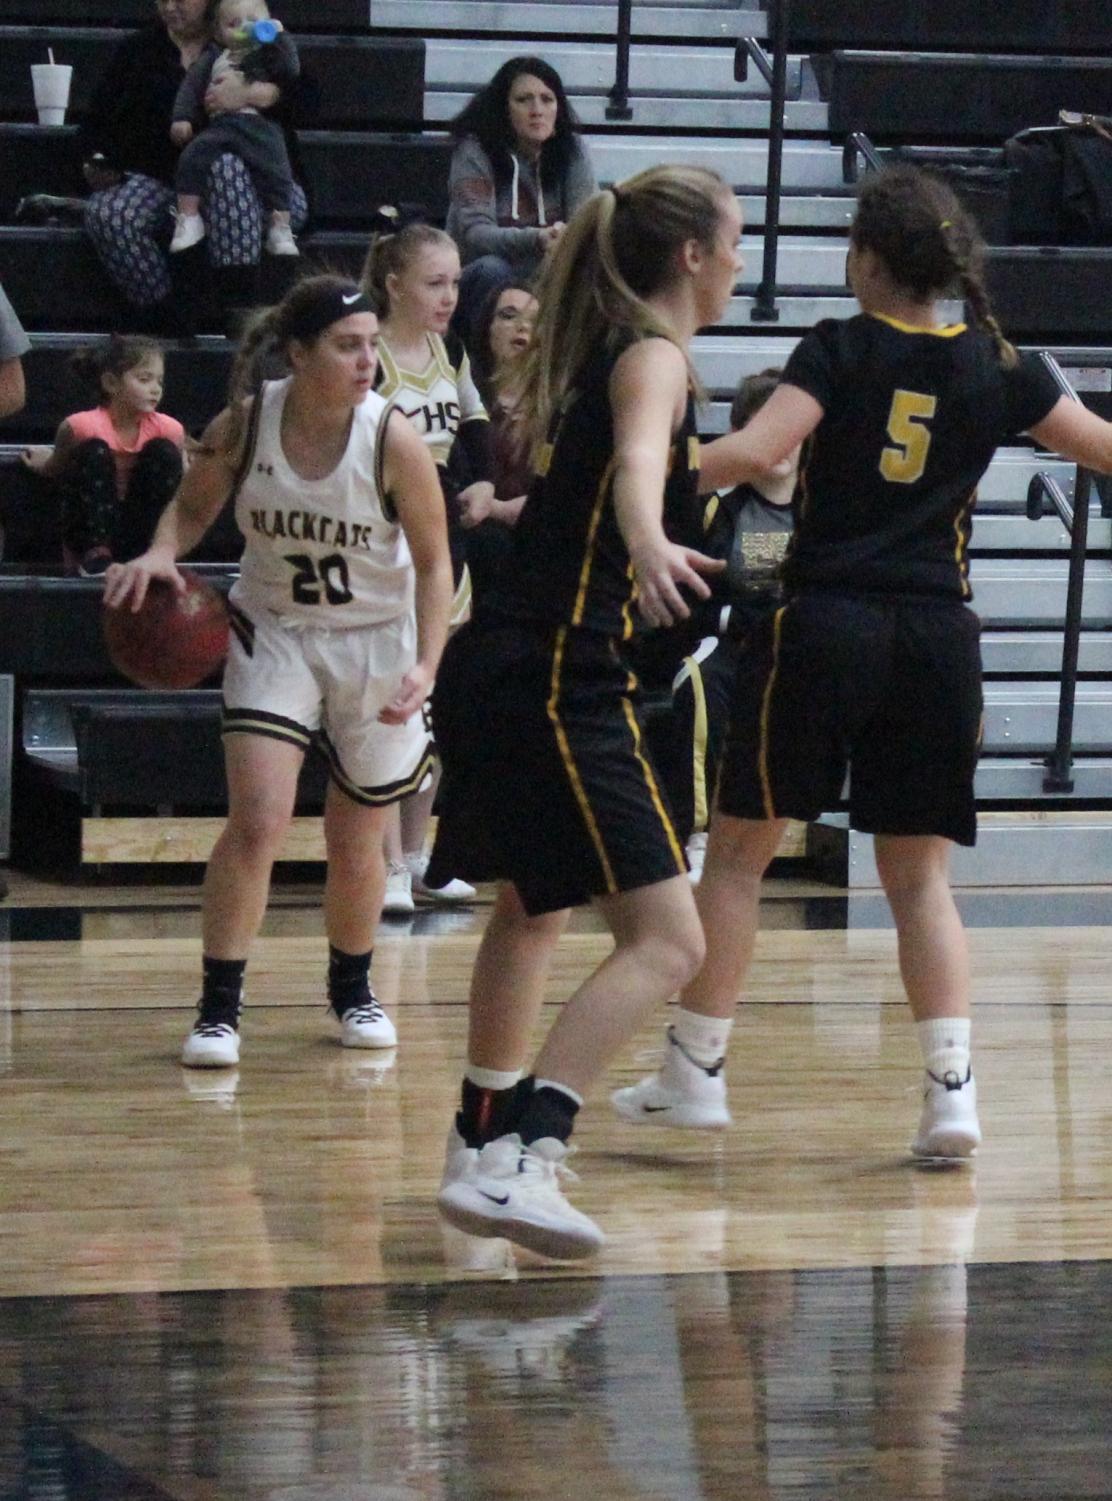 Senior Kylie Bastie on offense at the January 8th home game against Doniphan.